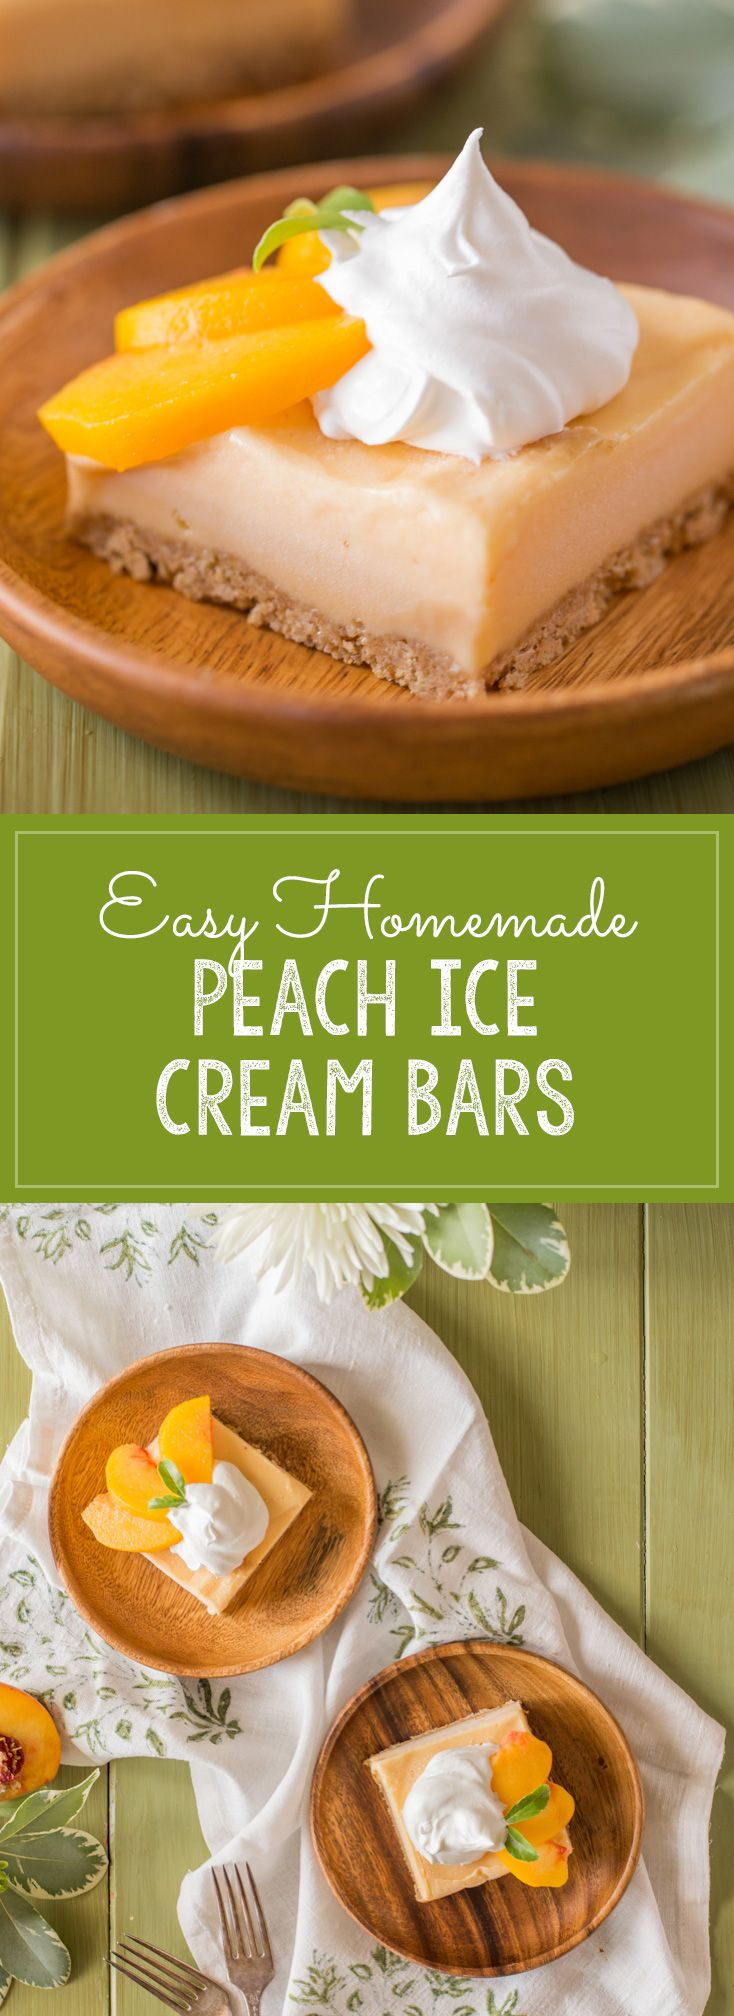 17 Best images about Ice Creams/Sorbets on Pinterest | Ice ...